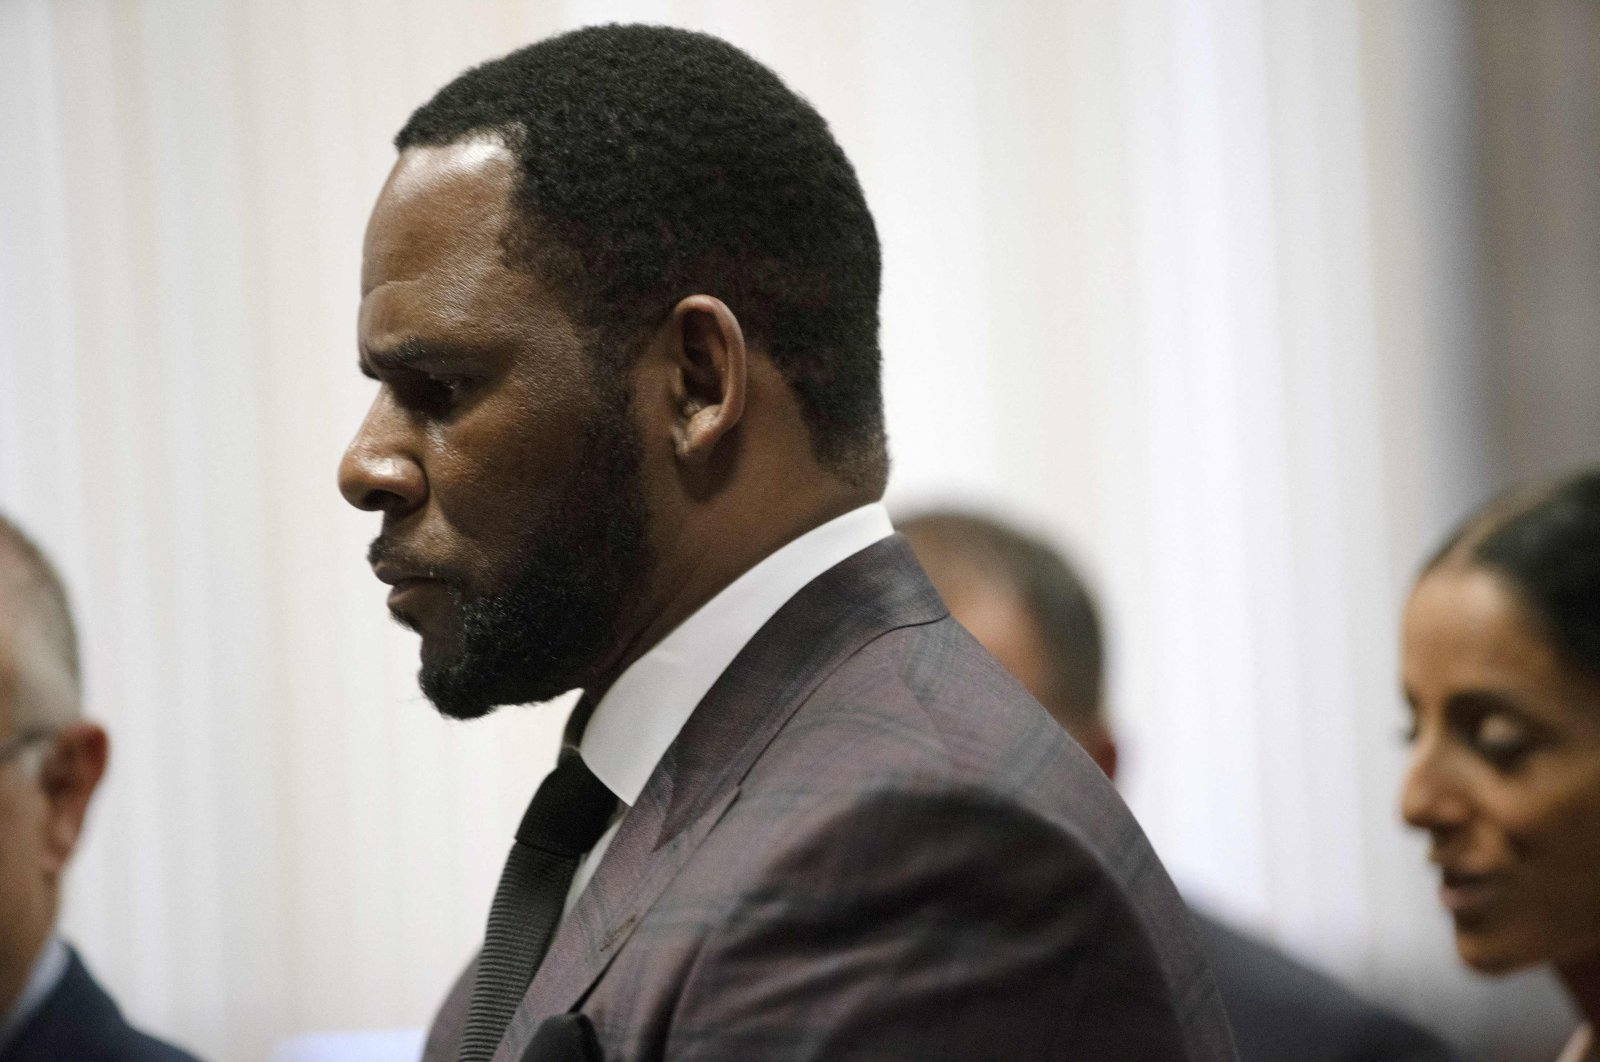 R&B singer R. Kelly appears at a hearing before Judge Lawrence Flood at Leighton Criminal Court Building in Chicago, Illinois, U.S., June 25, 2019. (AFP Photo)